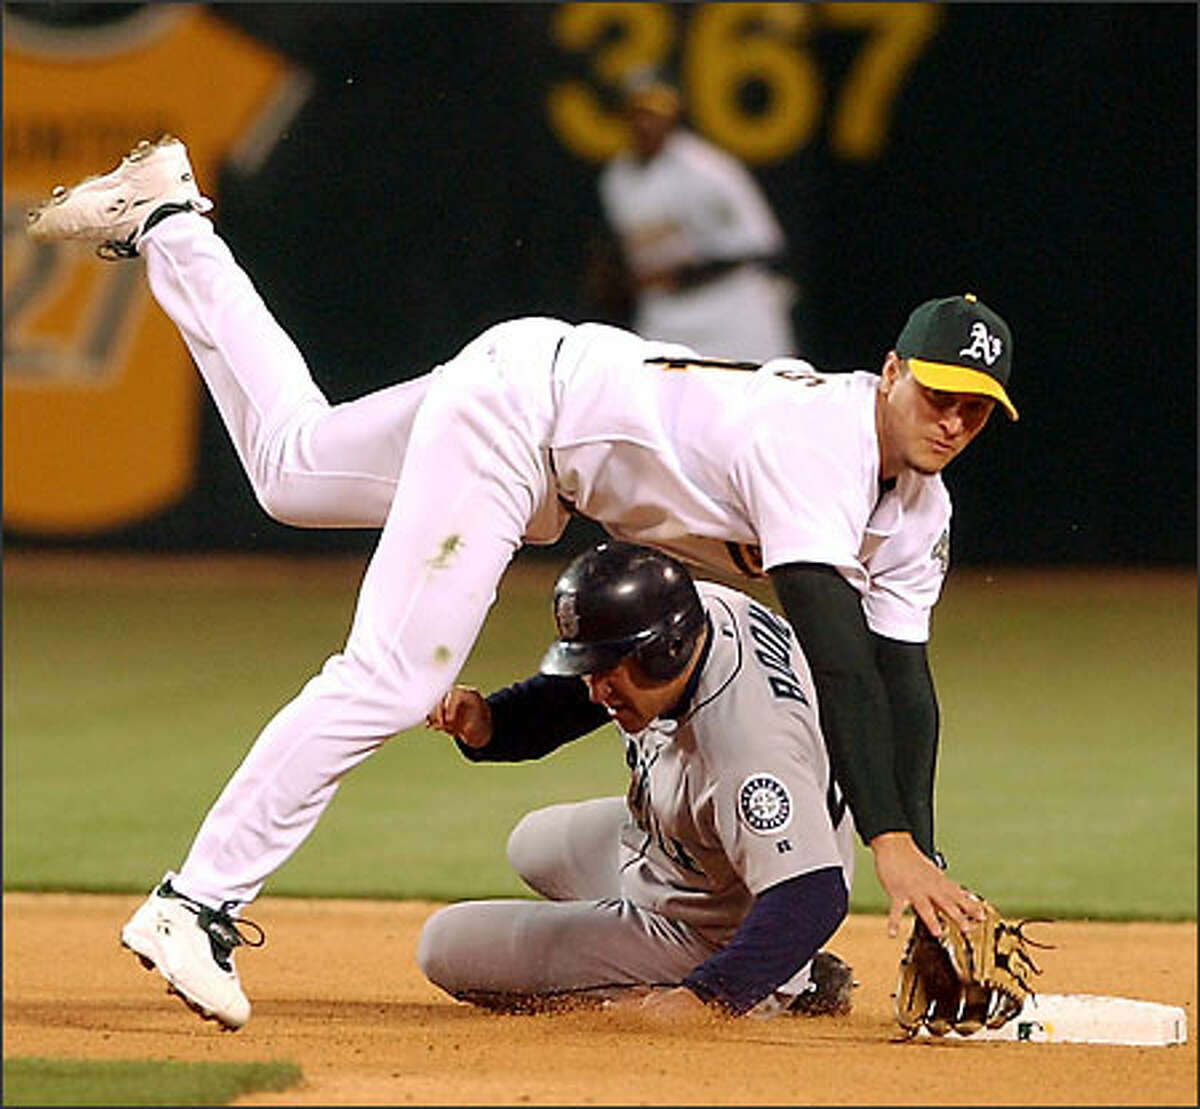 Oakland second baseman Mark Ellis falls over Boone, his Mariners counterpart, completing a double play that ended the fourth inning.